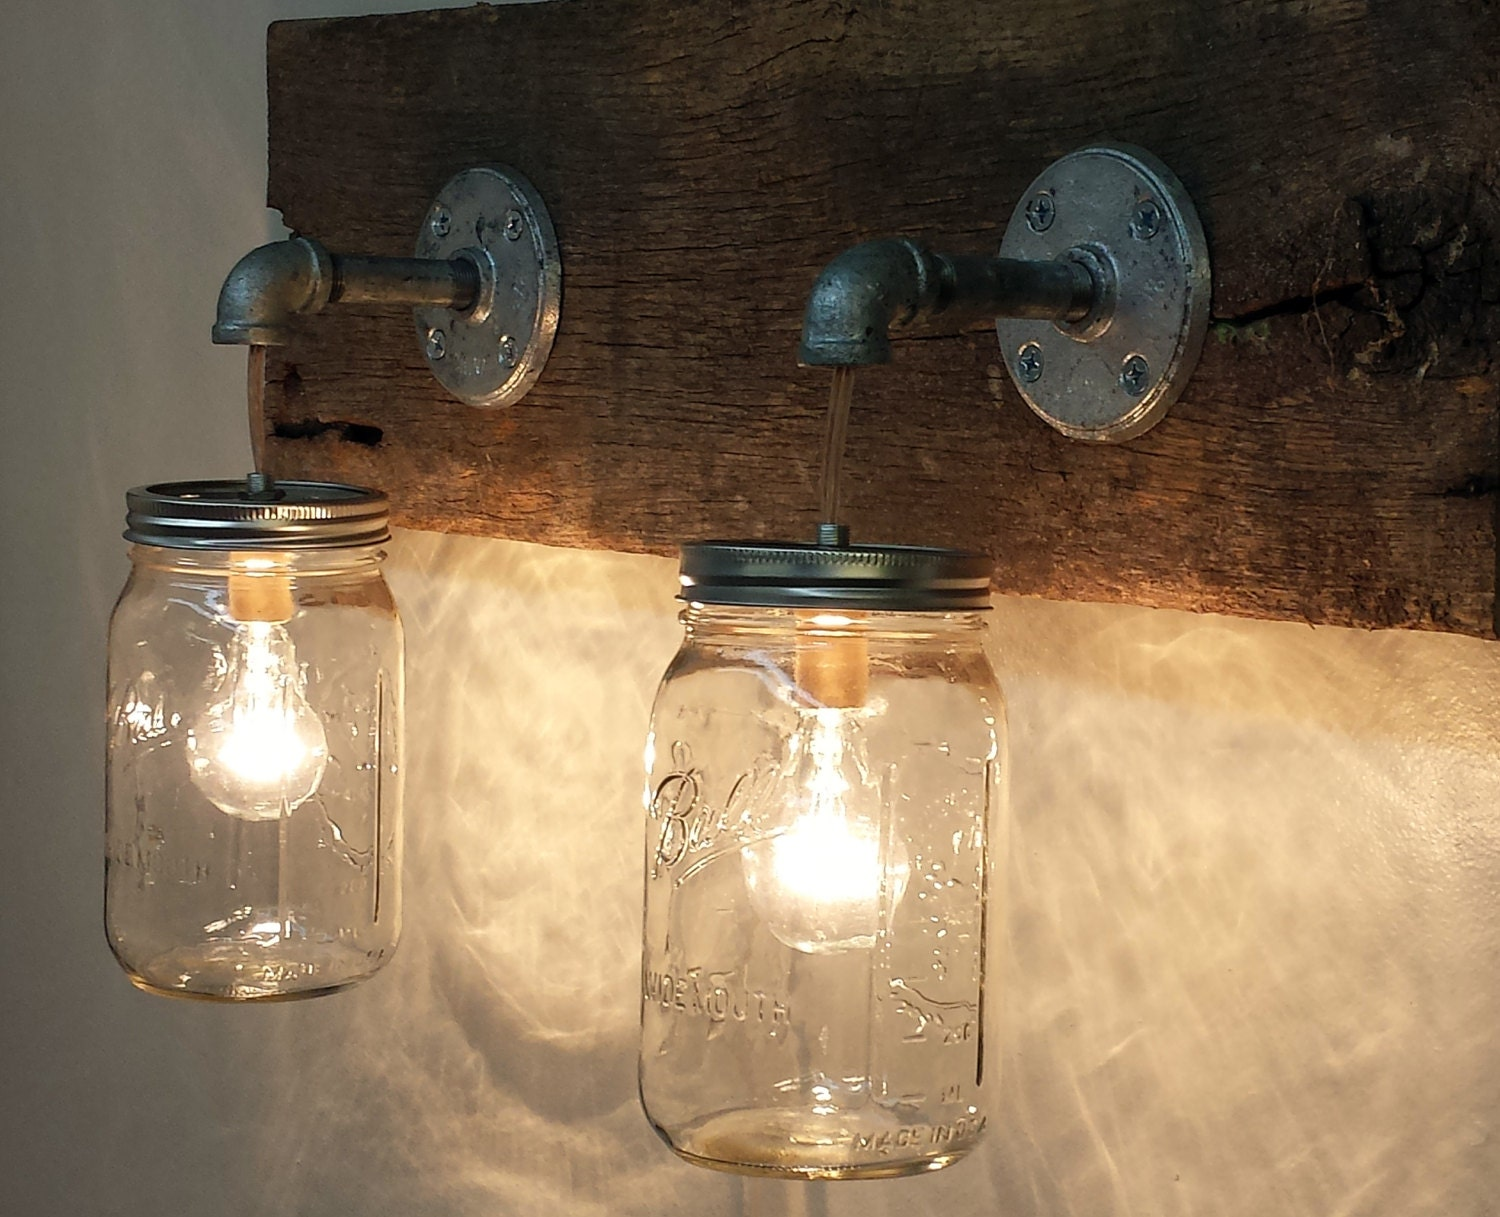 Bathroom Vanity Mason Jar Light mason jar 2 light fixture rustic reclaimed barn wood mason jar